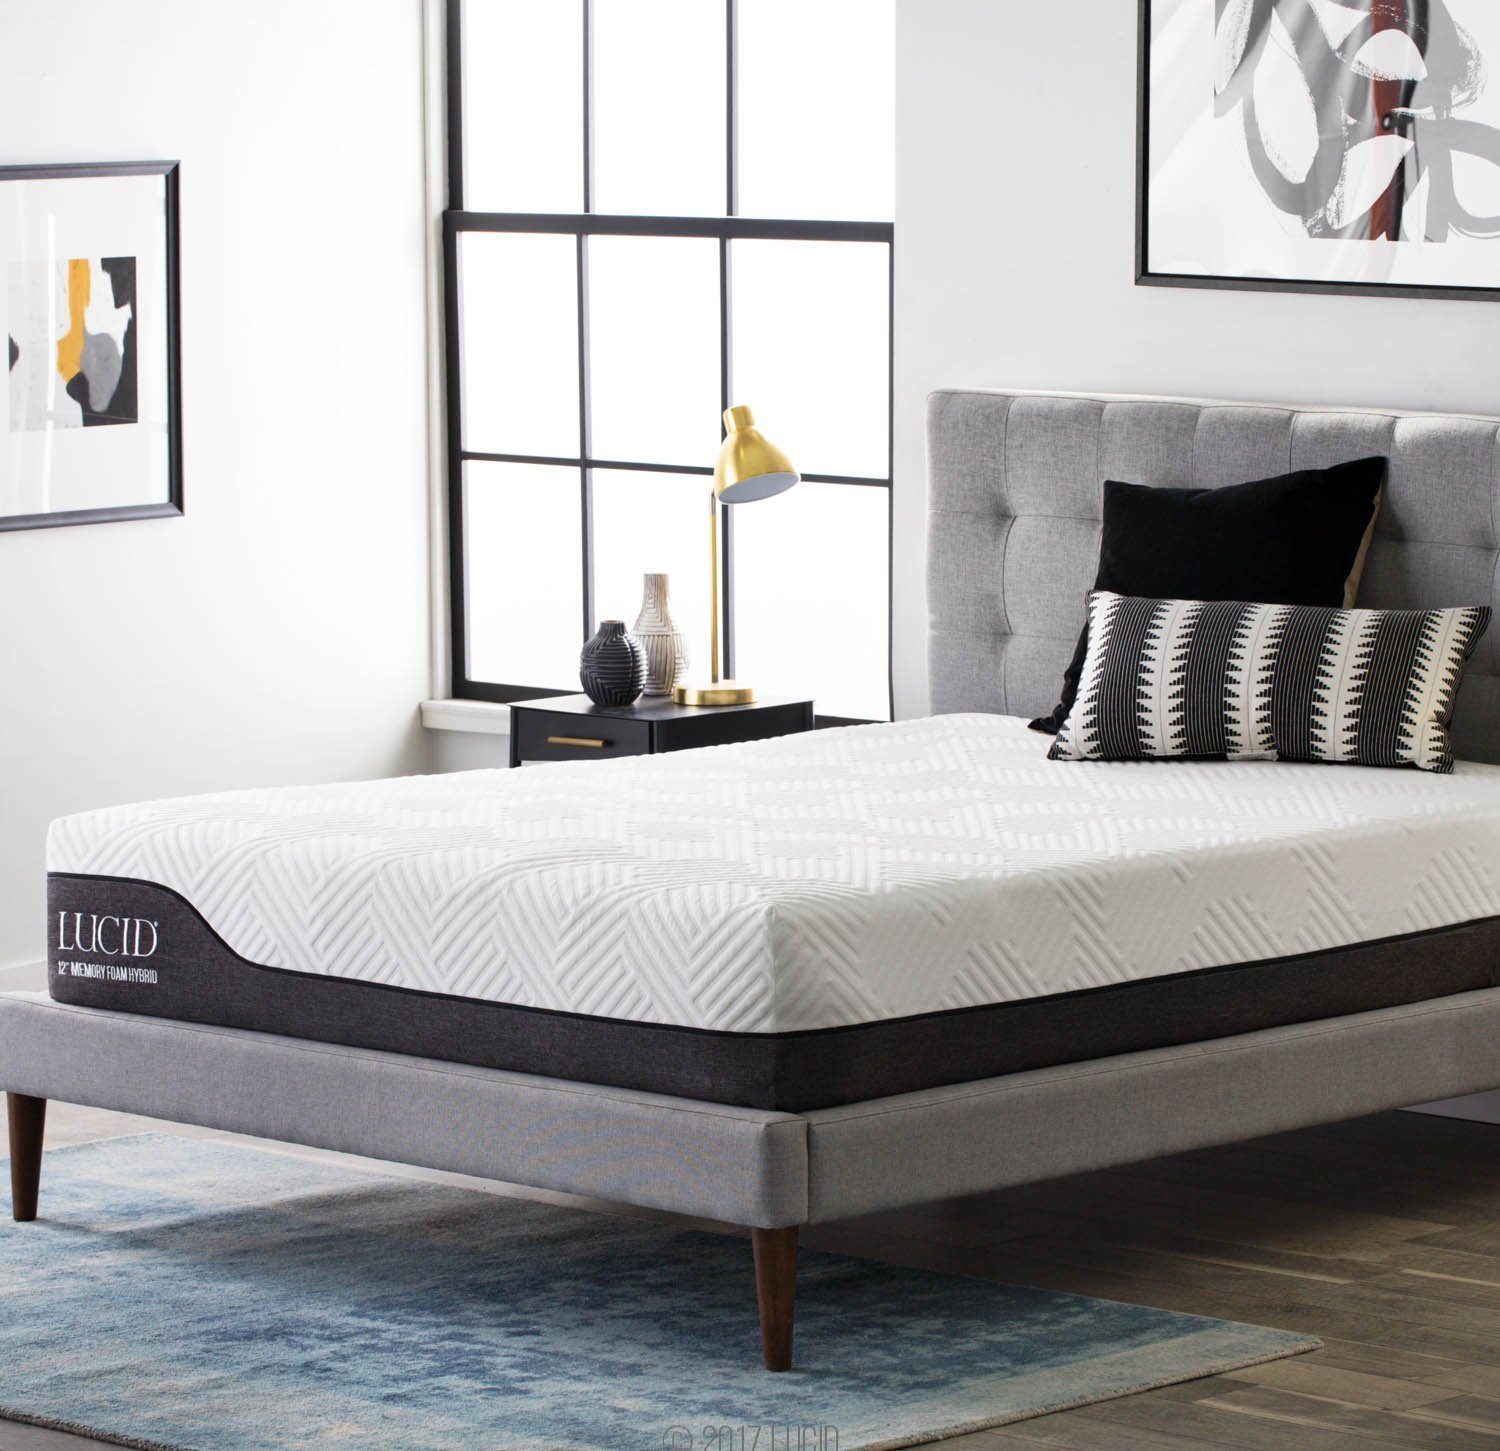 Lucid 12 Inch Hybrid Mattress with Bamboo Charcoal and Aloe Vera Infused Memory Foam